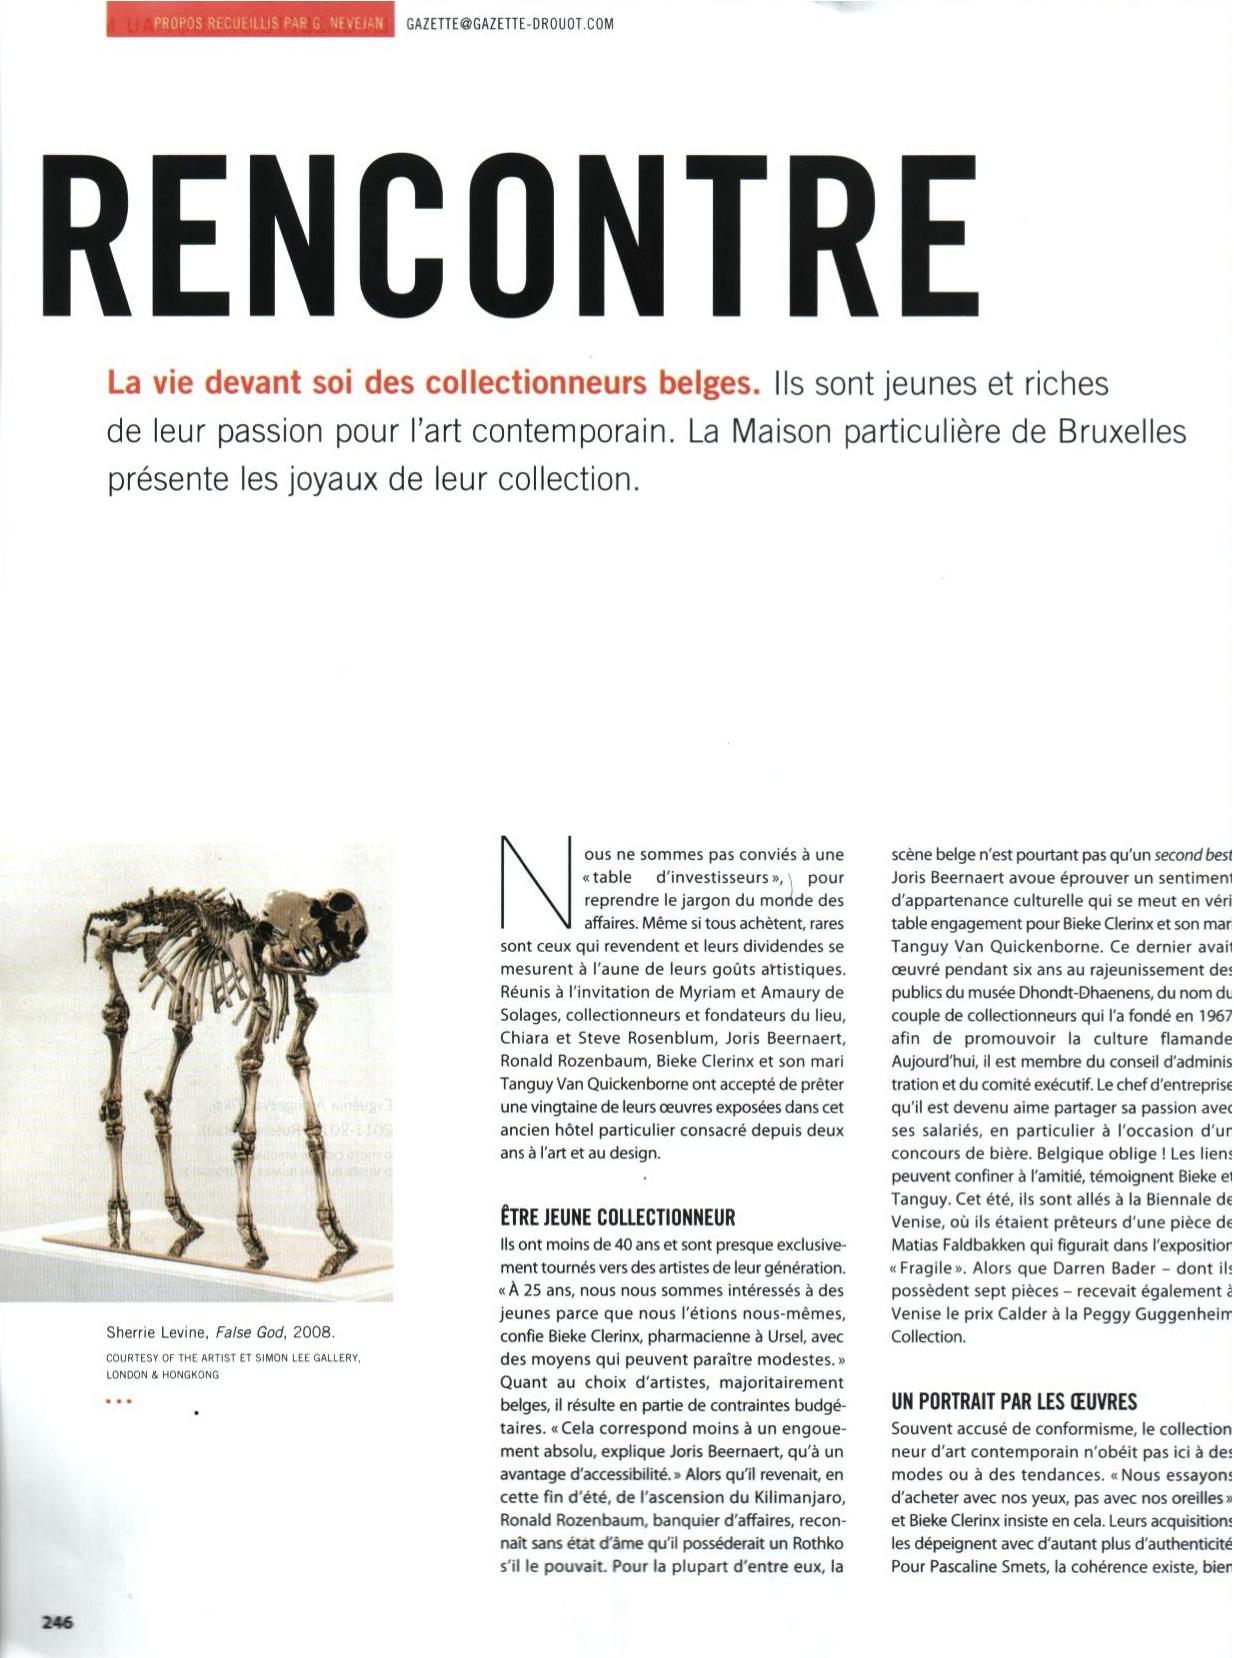 La_Gazette_Drouot_-_octobre_2013